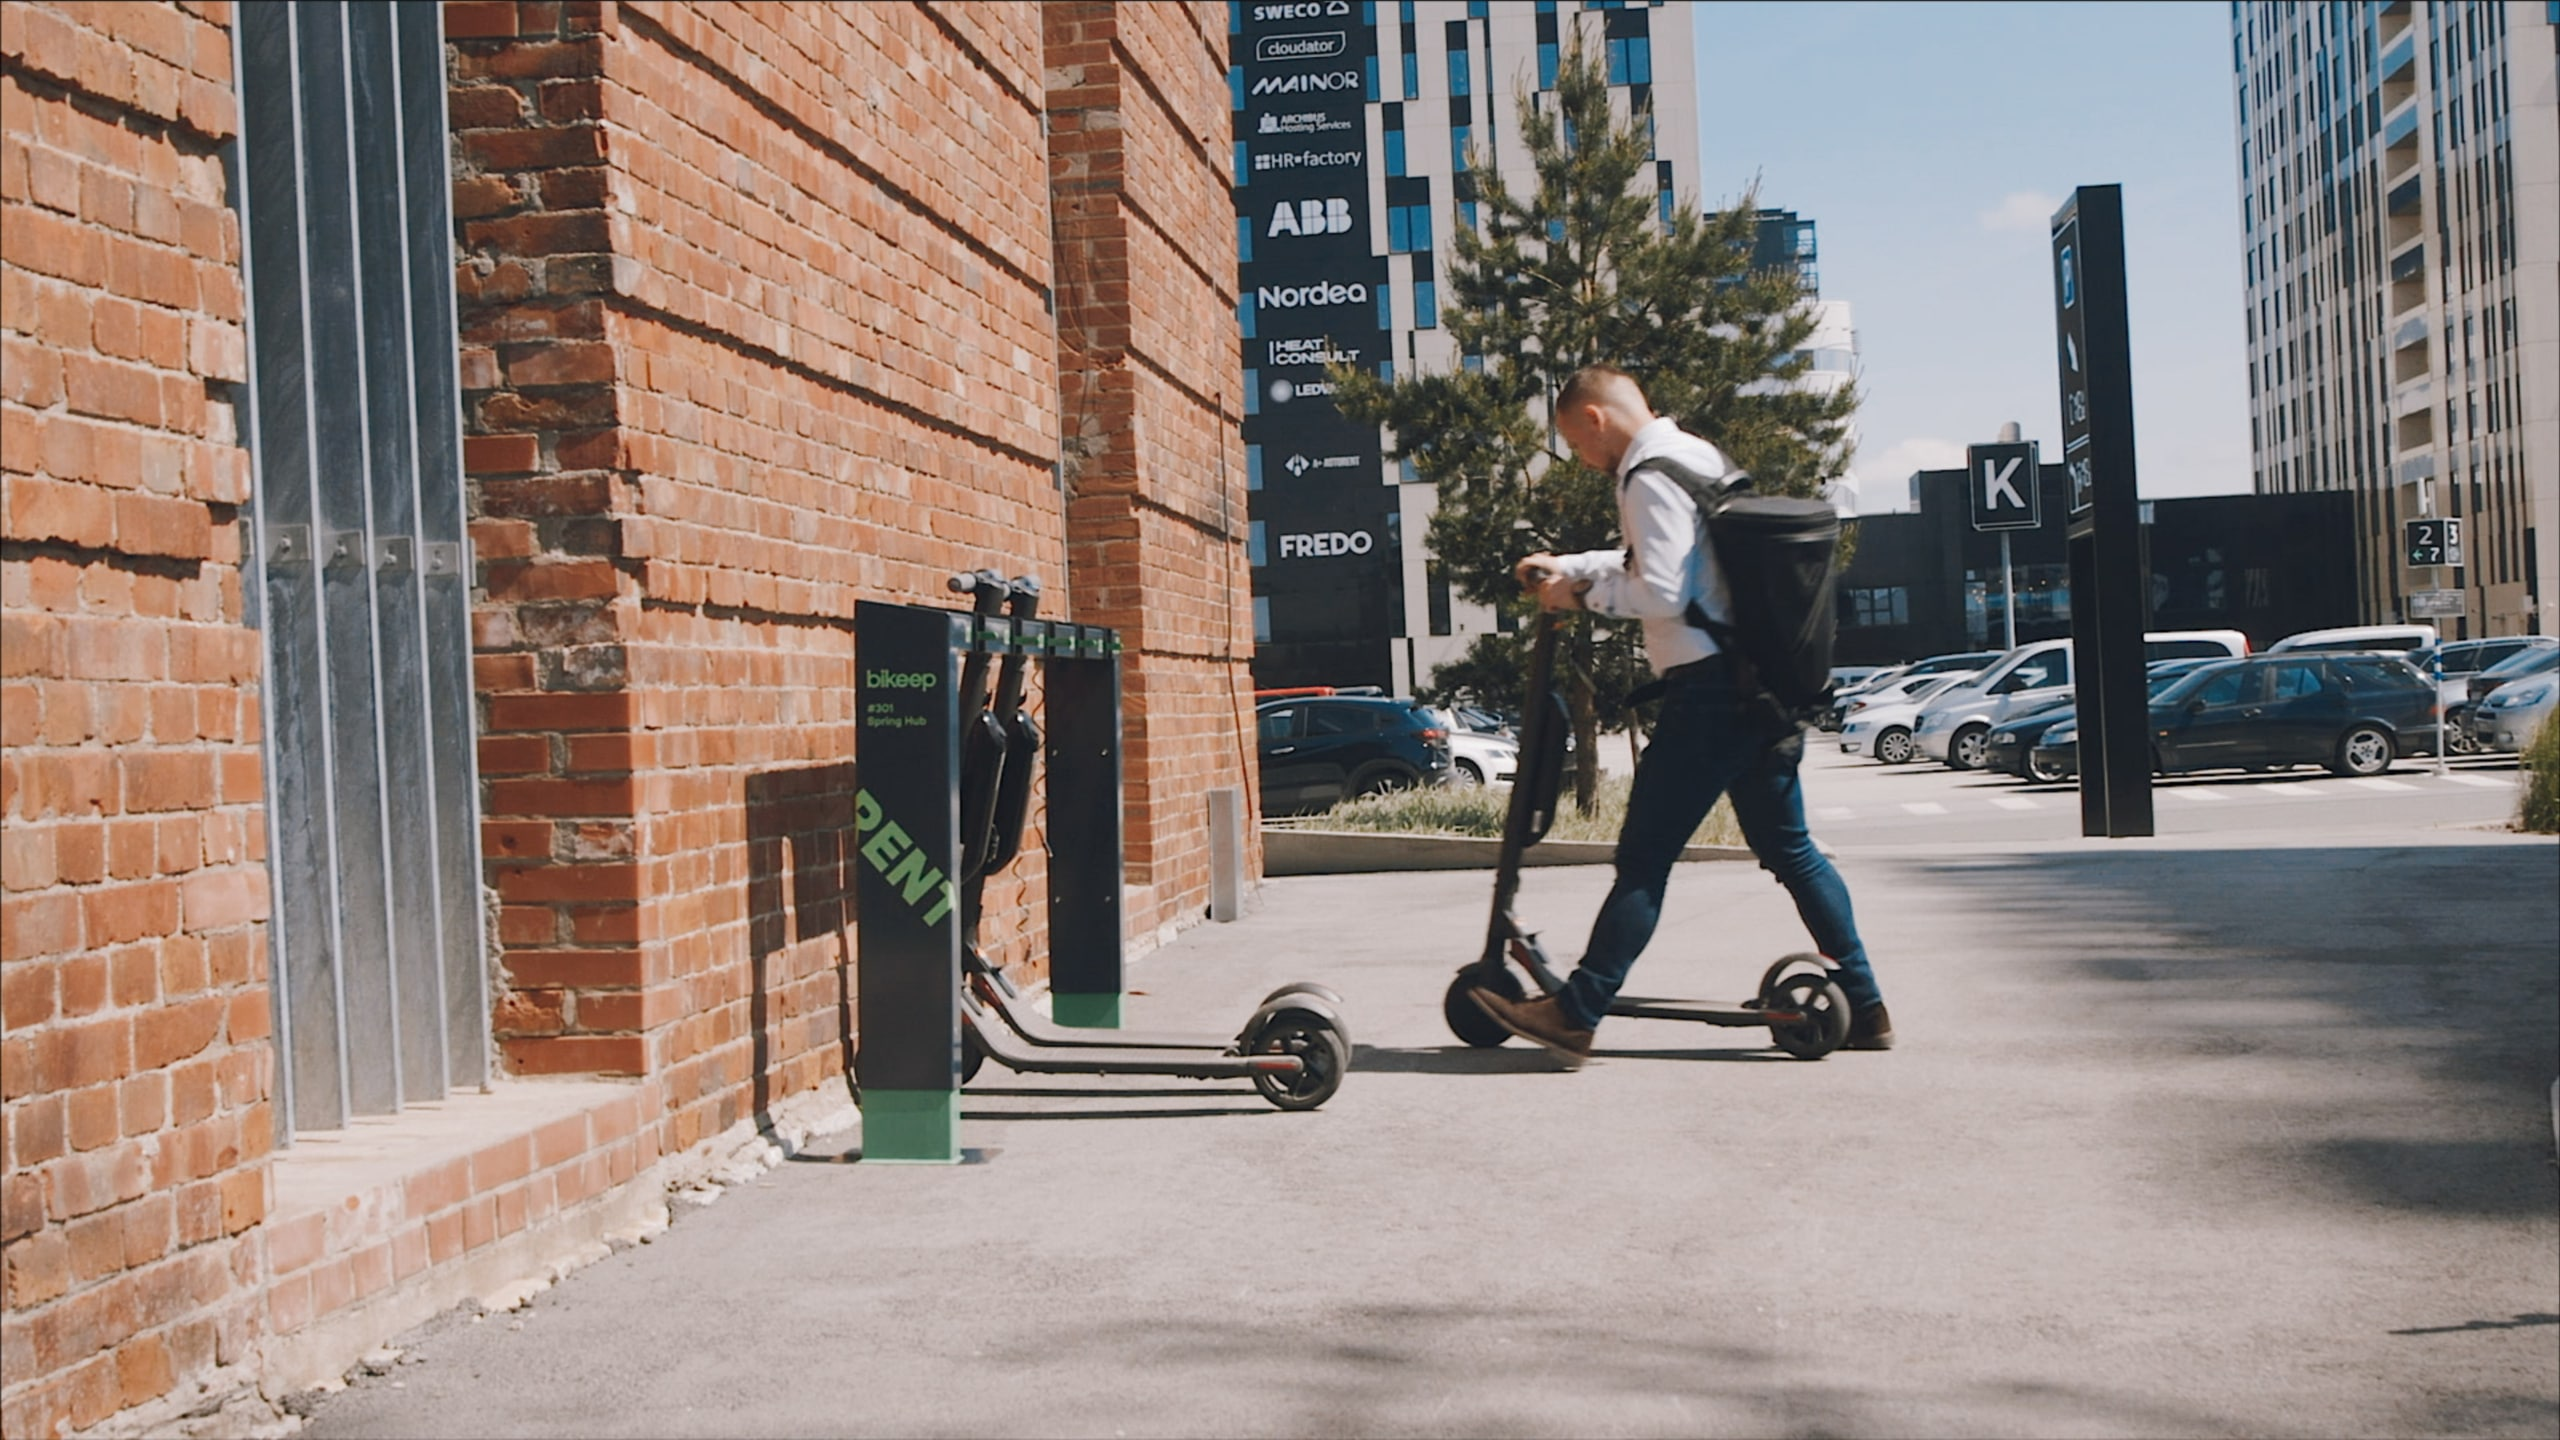 Bikeep's new scooter station in the March issue of Landscape Architecture Magazine (LAM)